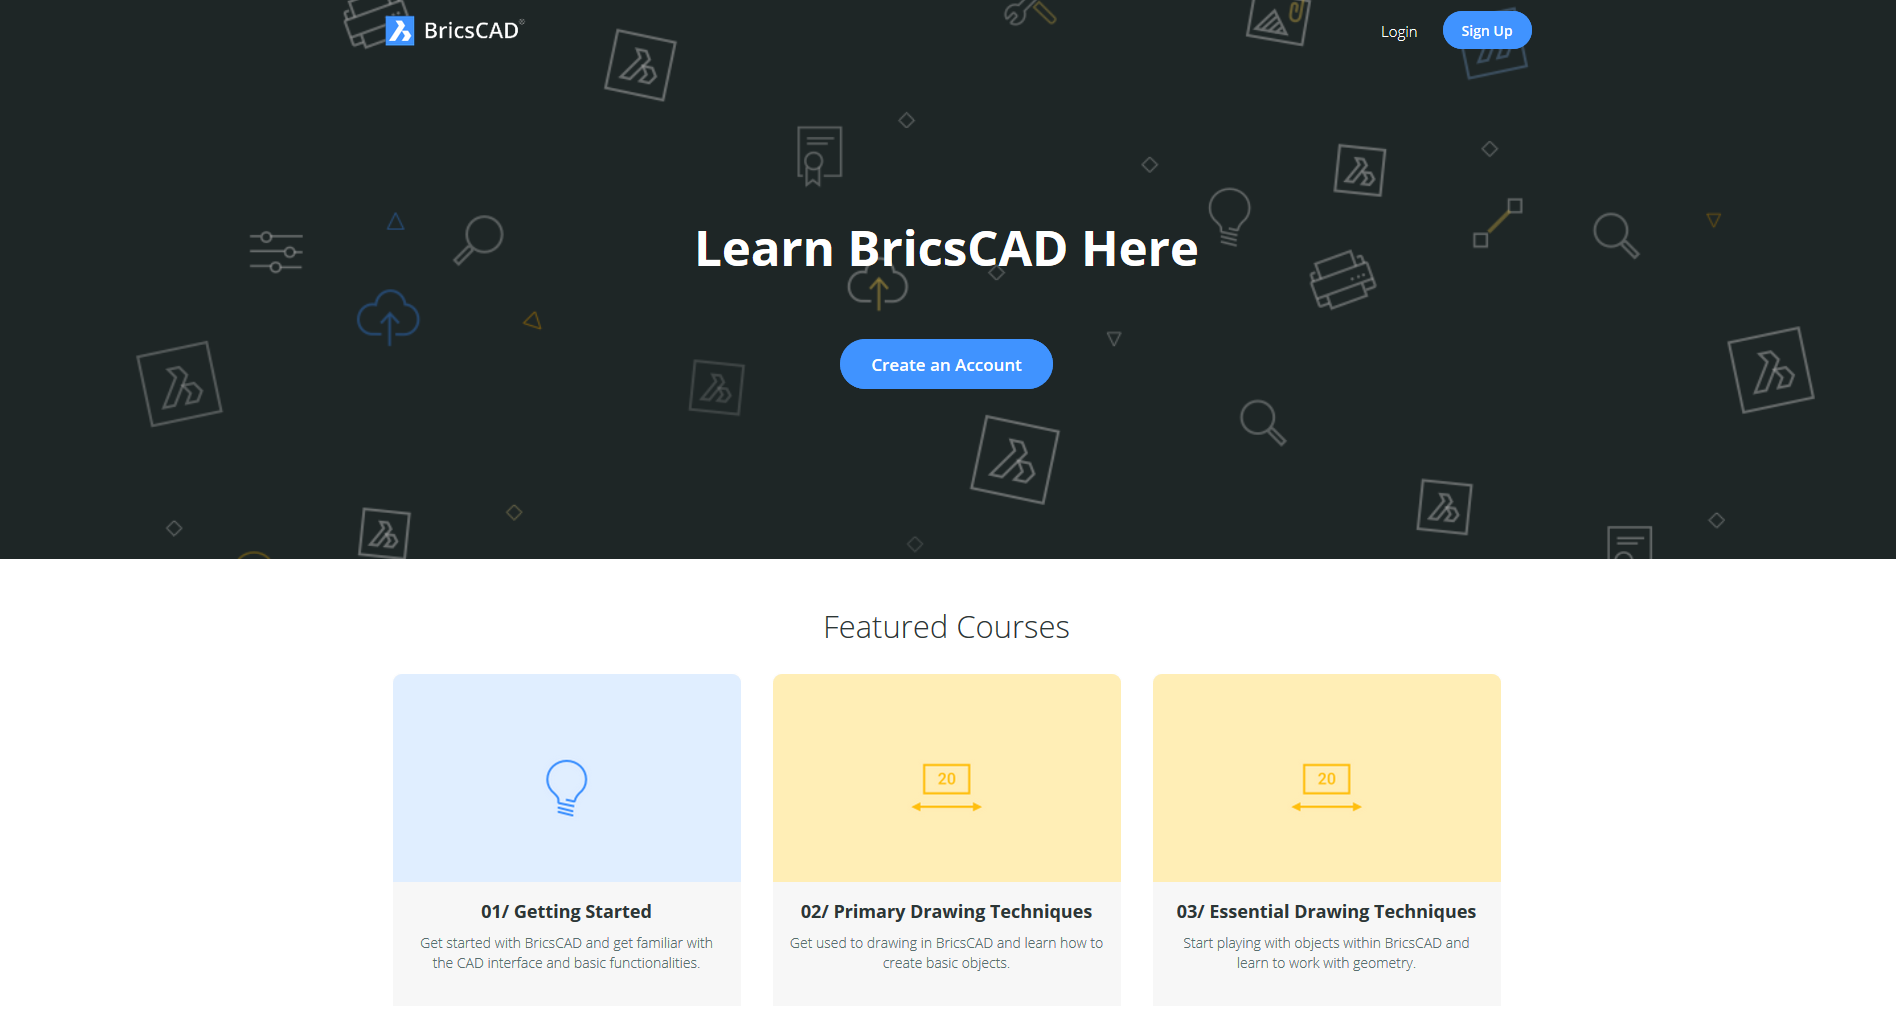 BricsCAD tutorials